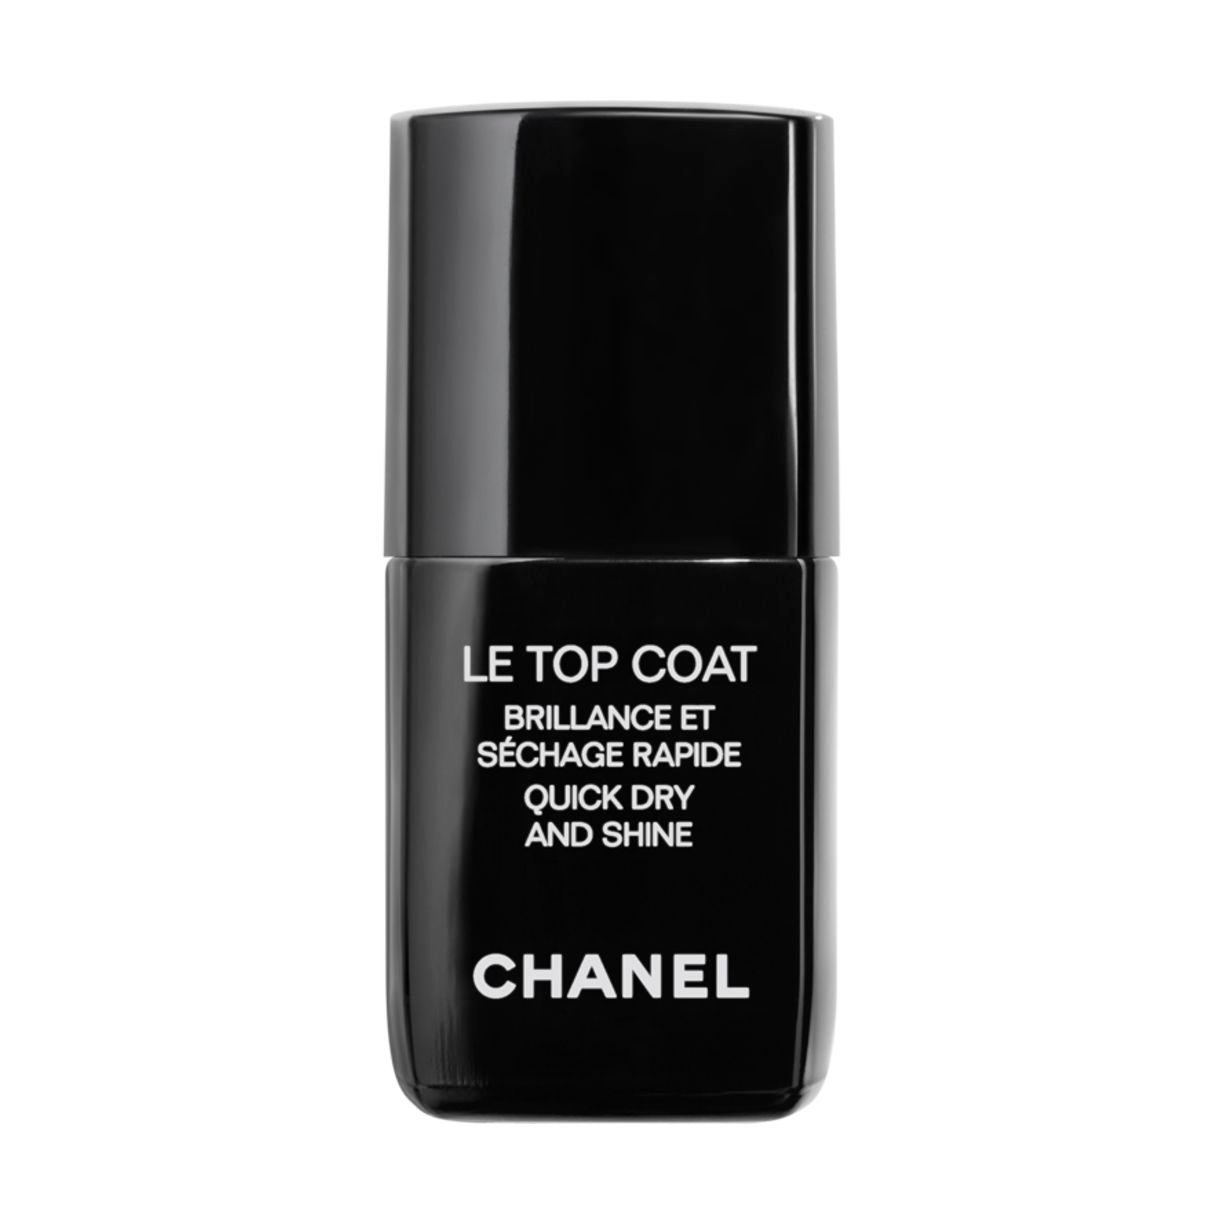 LE TOP COAT BRILLANTEZZA E ASCIUGATURA RAPIDA